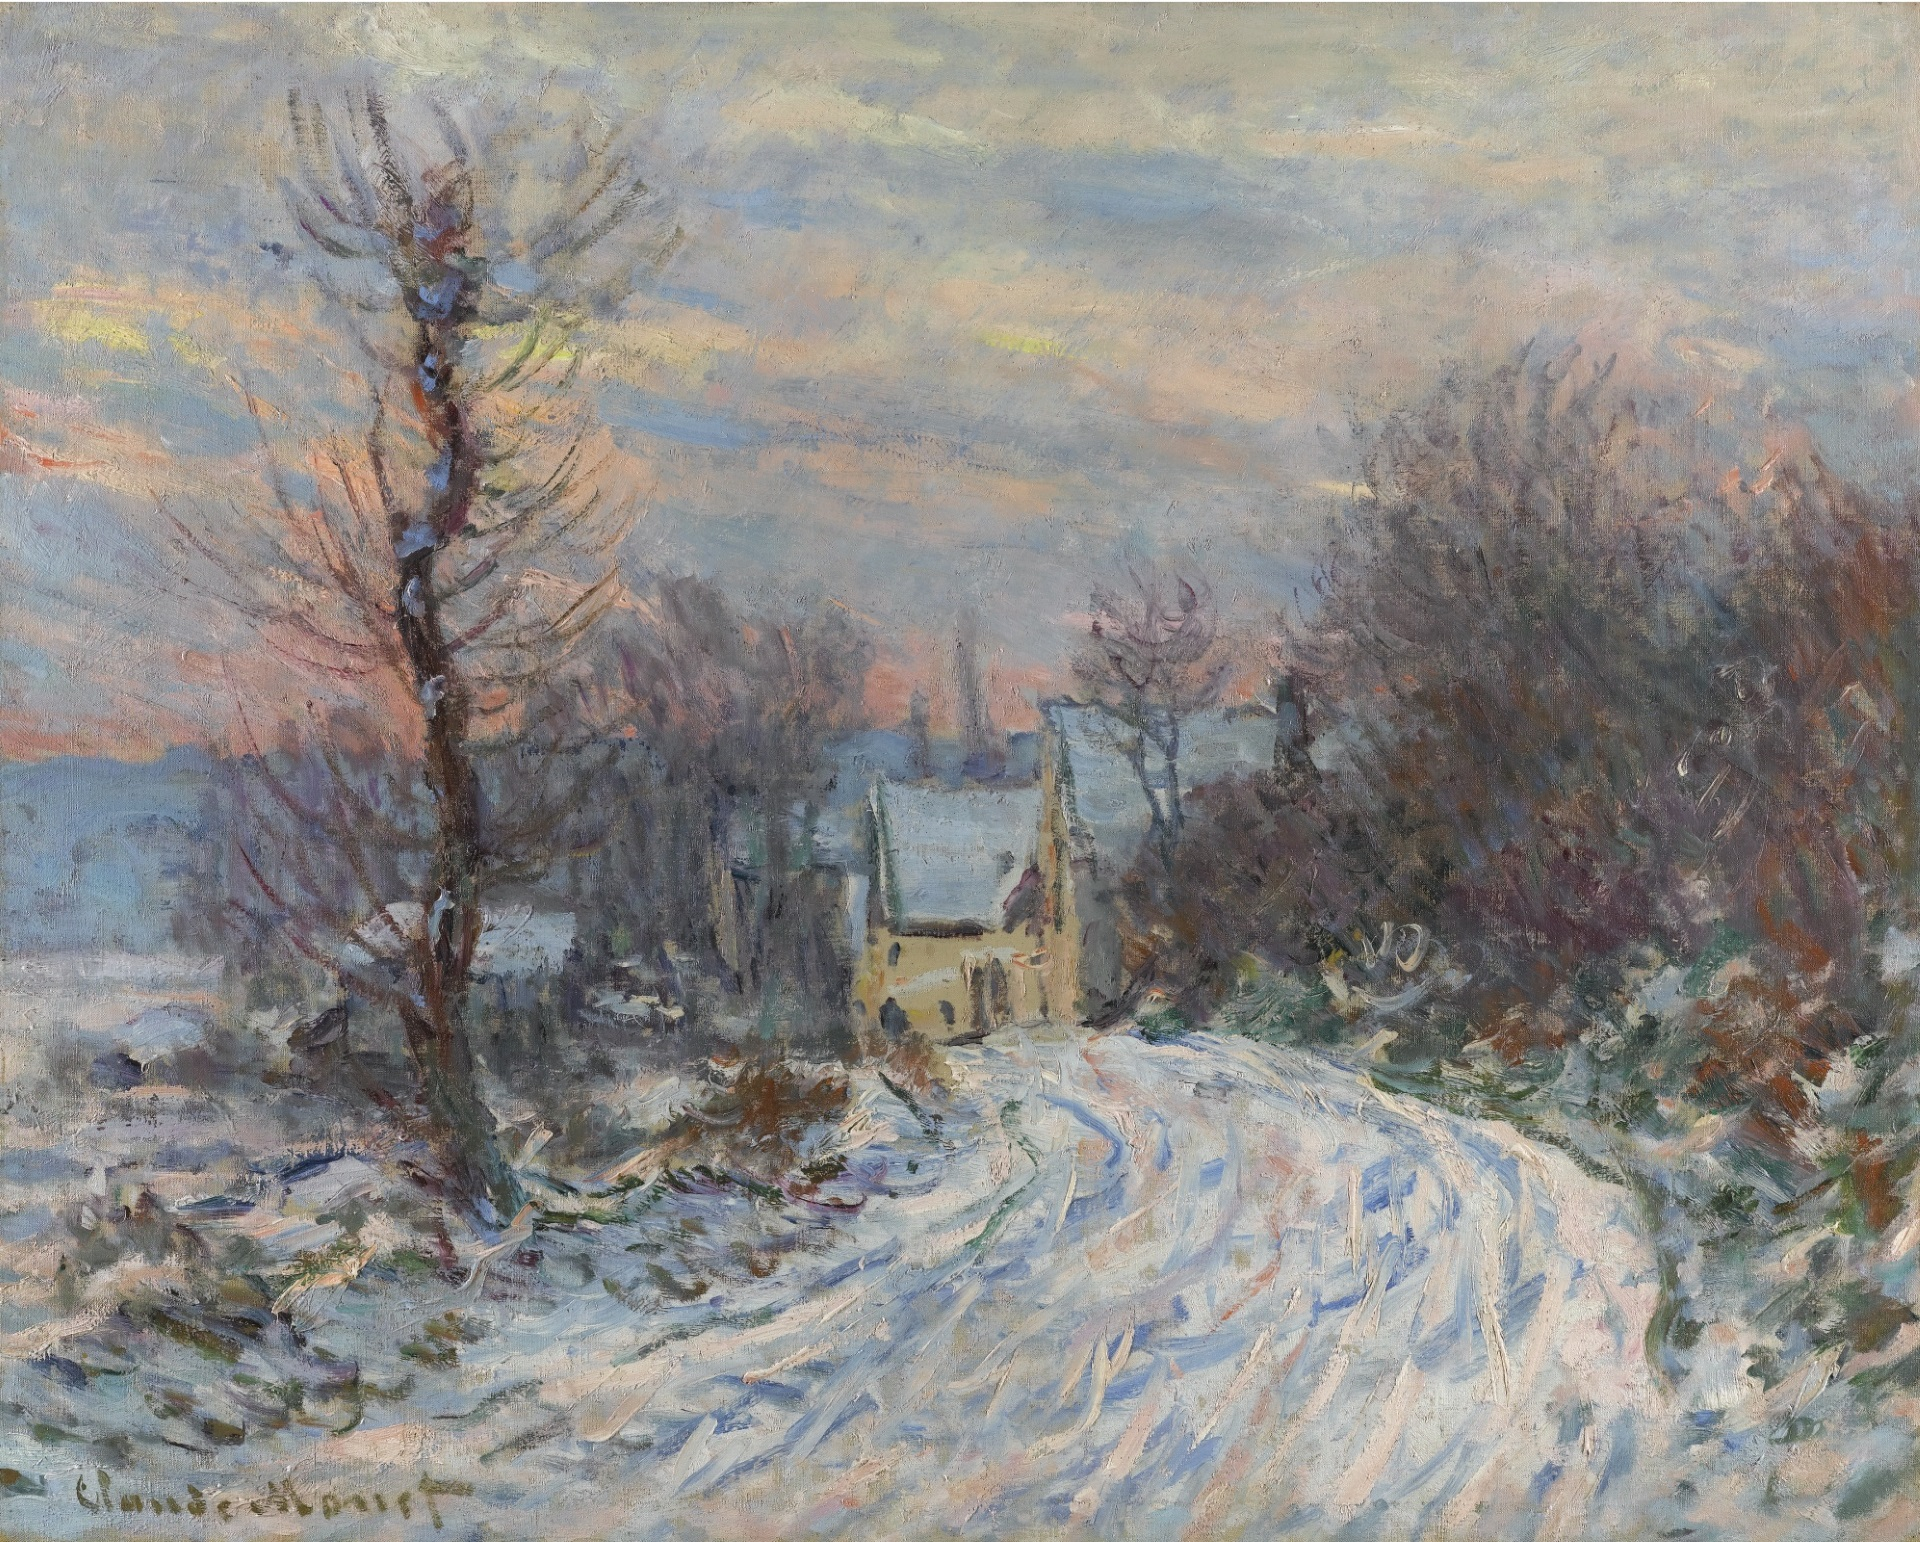 Claude Monet - L'Entrée de Giverny en hiver 1885 | USD 13.07 million |  ArtsCash.com